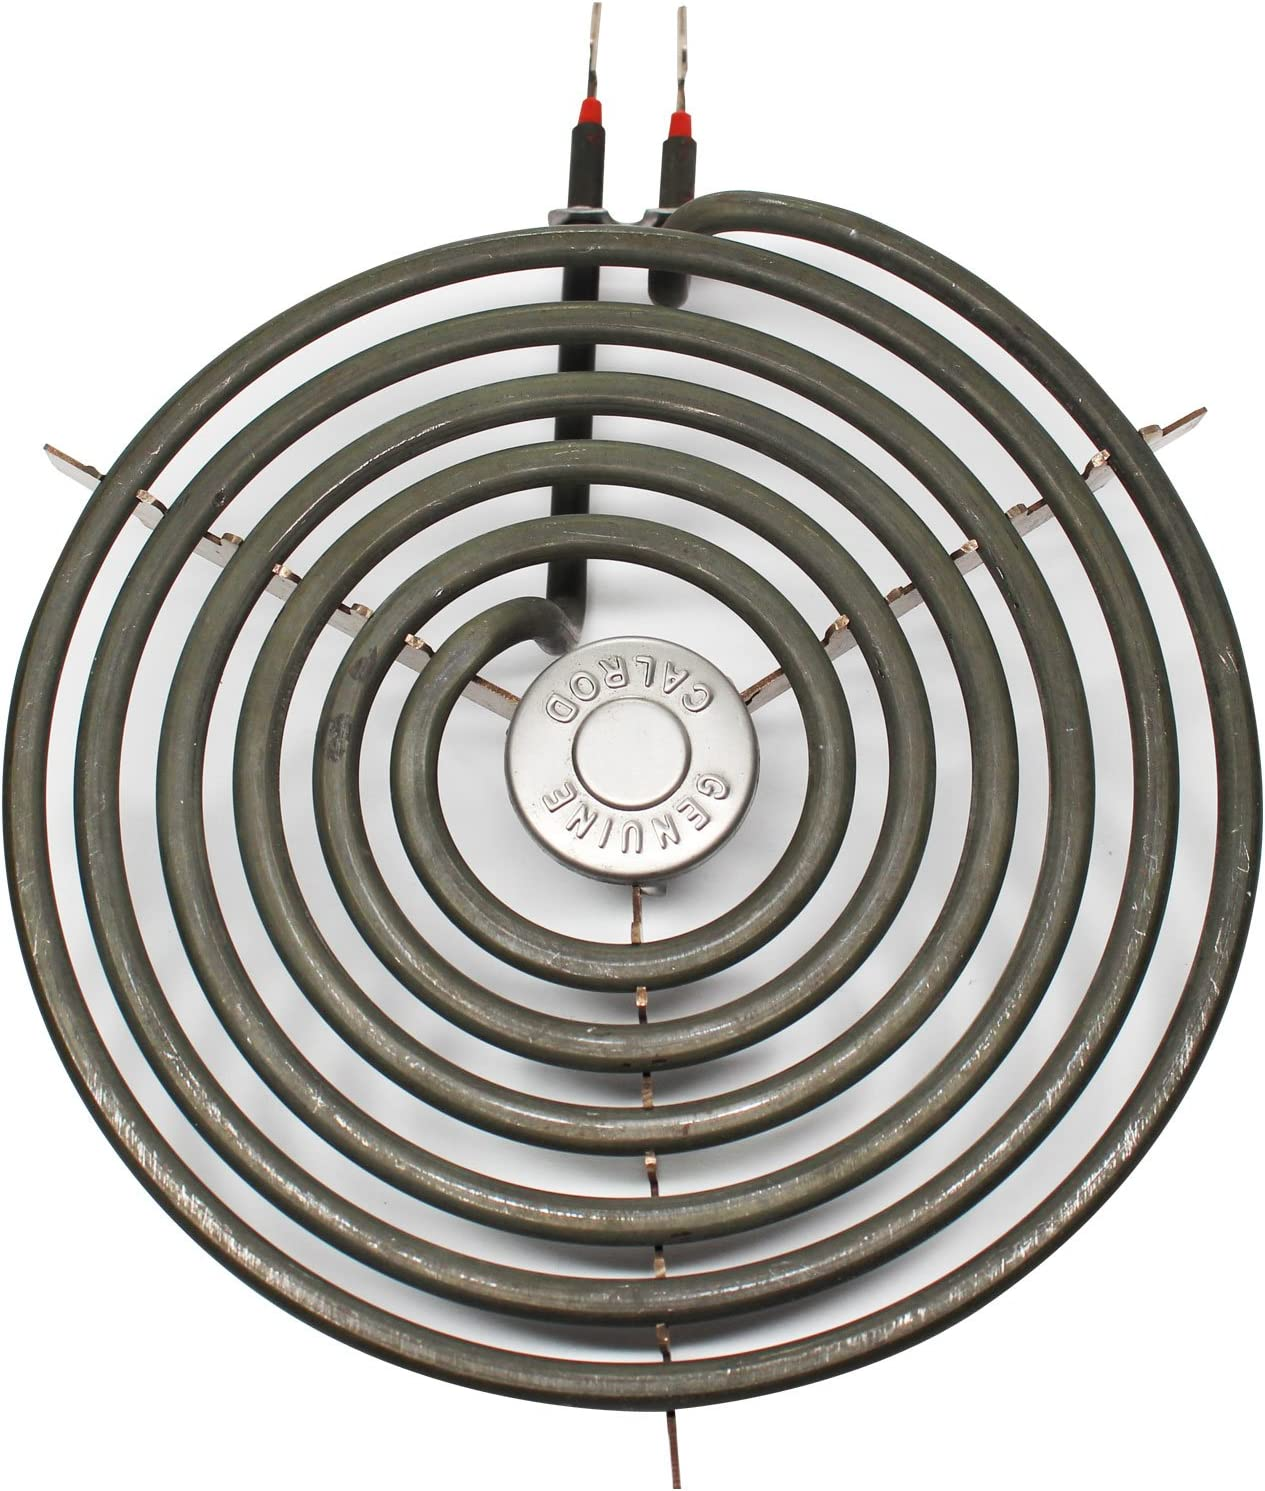 Replacement WB30M2 8 inch 6 Turns Burner Element for General Electric - Compatible with General Electric JP328SK2SS, JP328WK2WW, JXDC41001, J63CK1, JB390GxH1, JB391G J2, JB391GxH1, JB391GxJ1